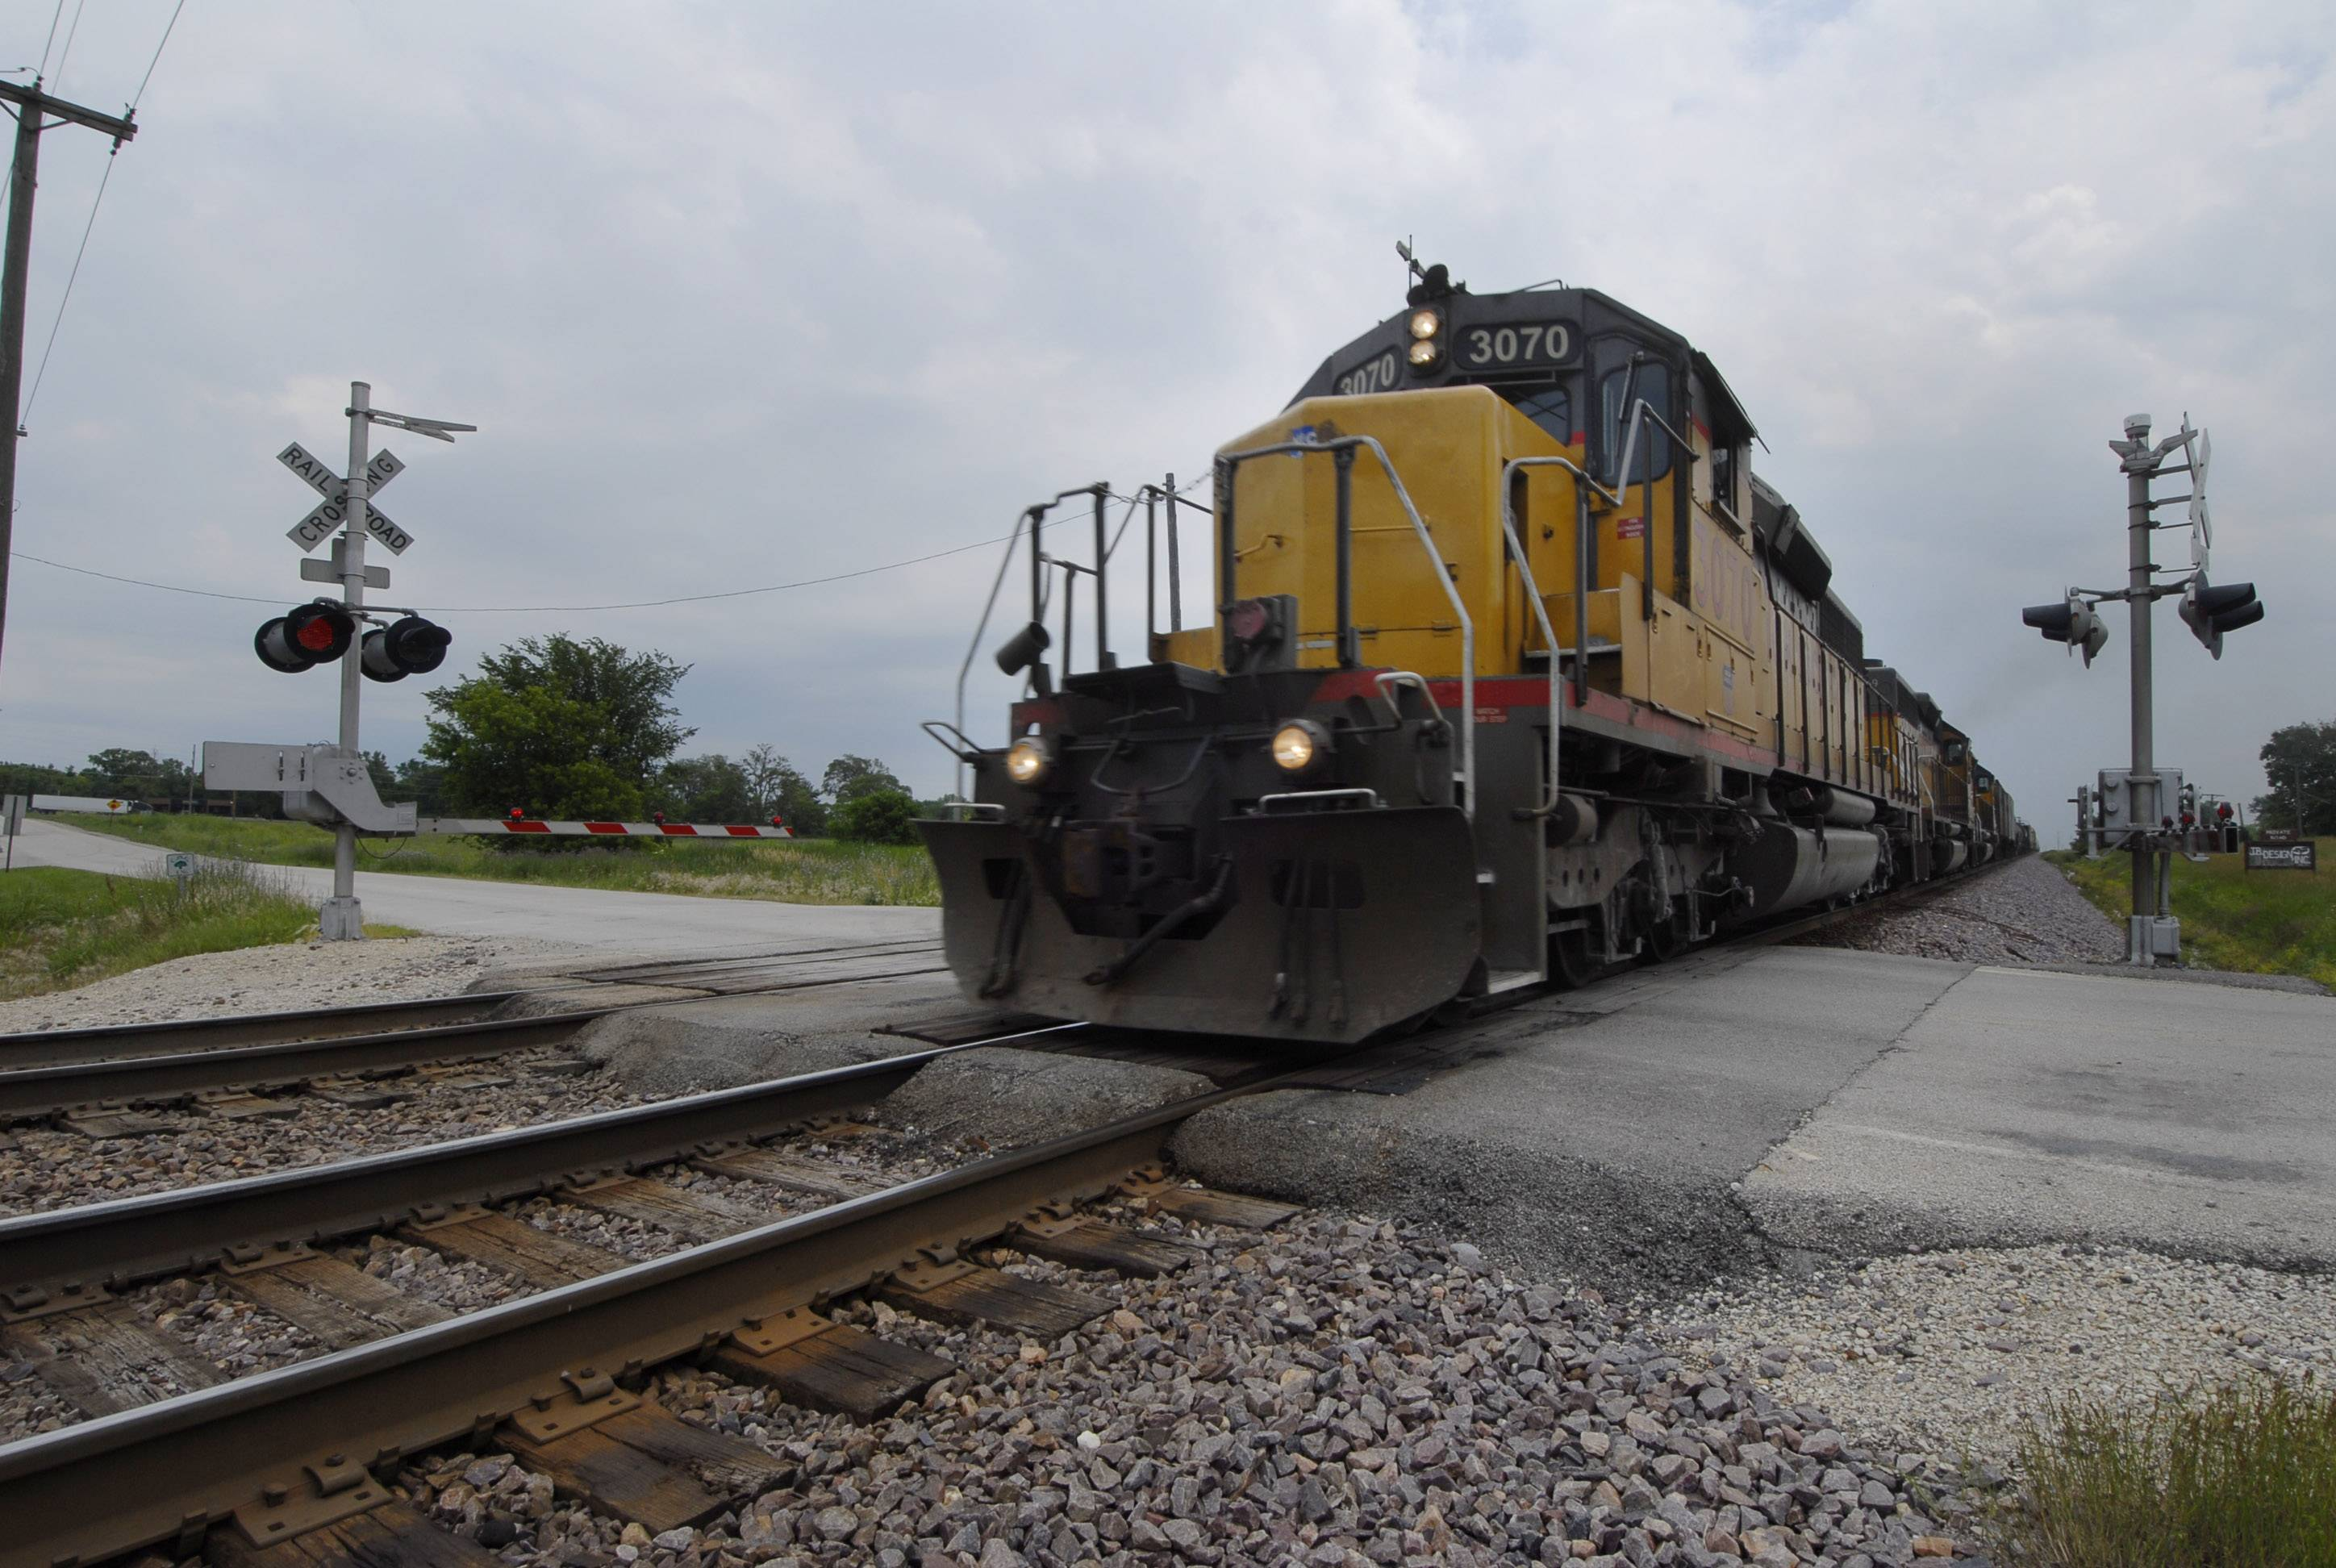 A third set of tracks will be coming to Geneva, as the Union Pacific Railroad and the Illinois Department of Transportation have announced funding for the project. The move is intended to alleviate freight congestion at the Geneva bottleneck.